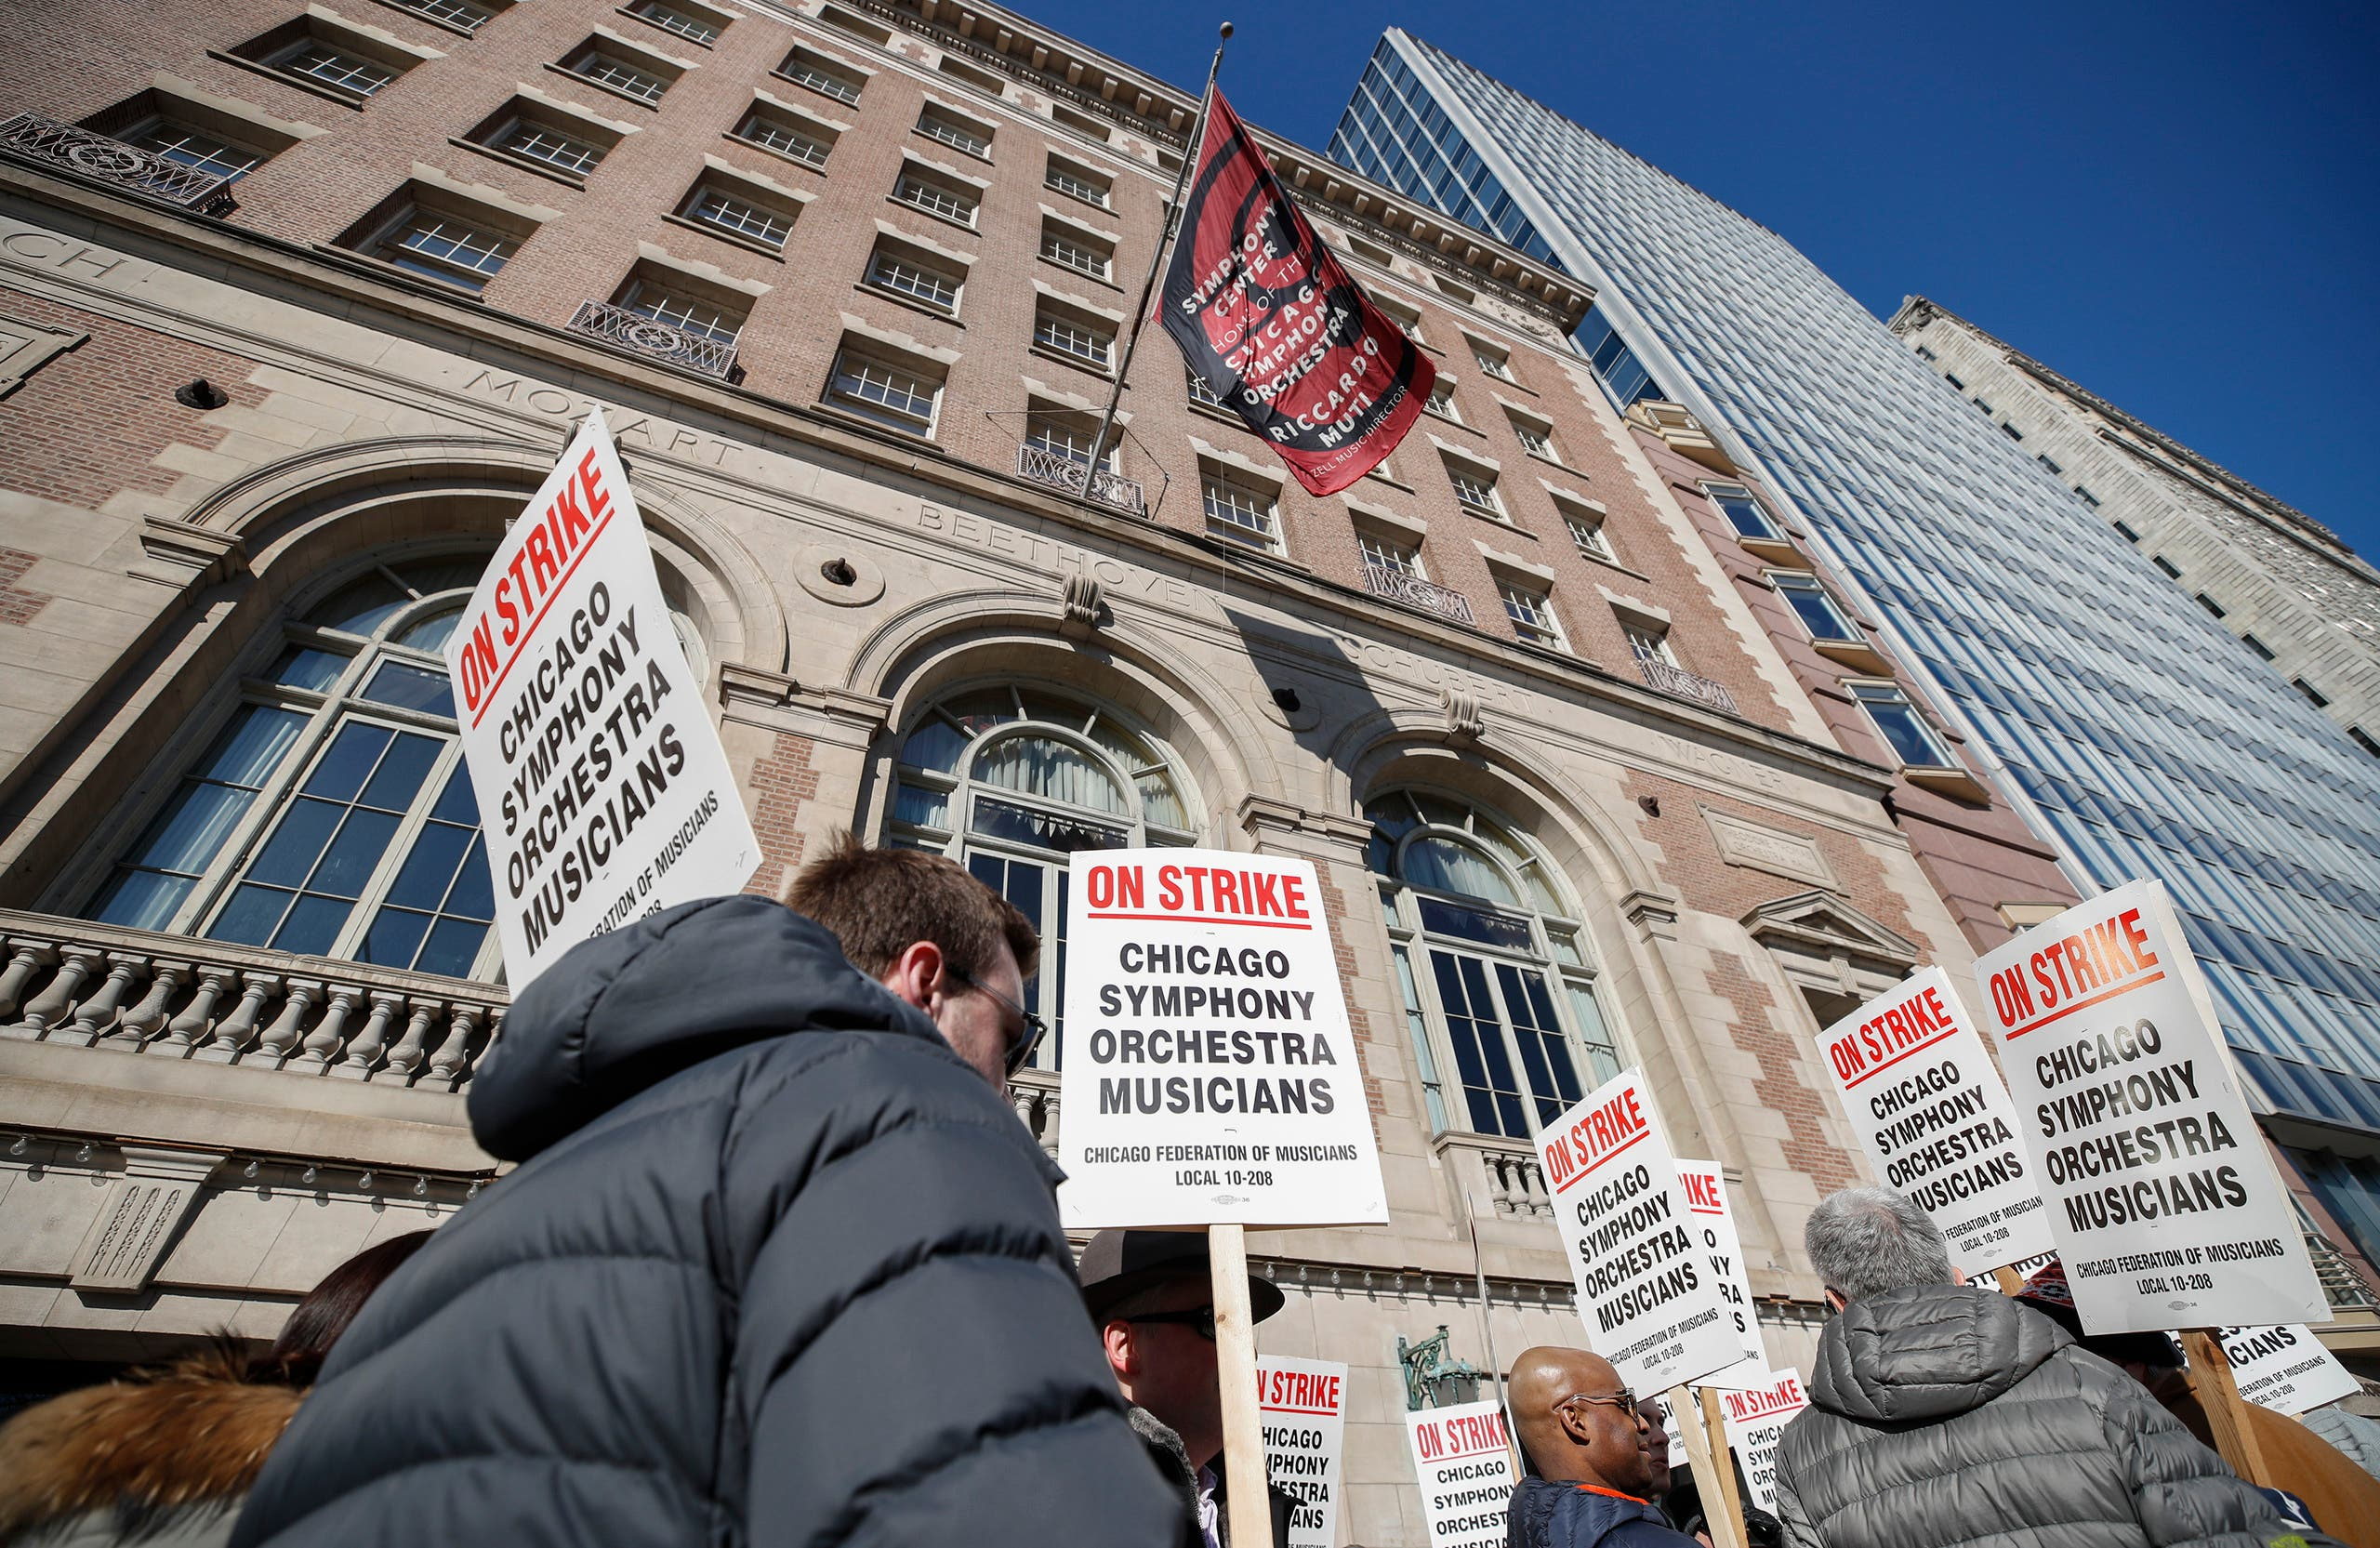 Members of the renowned Chicago Symphony Orchestra picket outside Symphony Center on March 12, 2019 in Chicago, after 11 months of pay talks failed to reach an agreement. (AP)